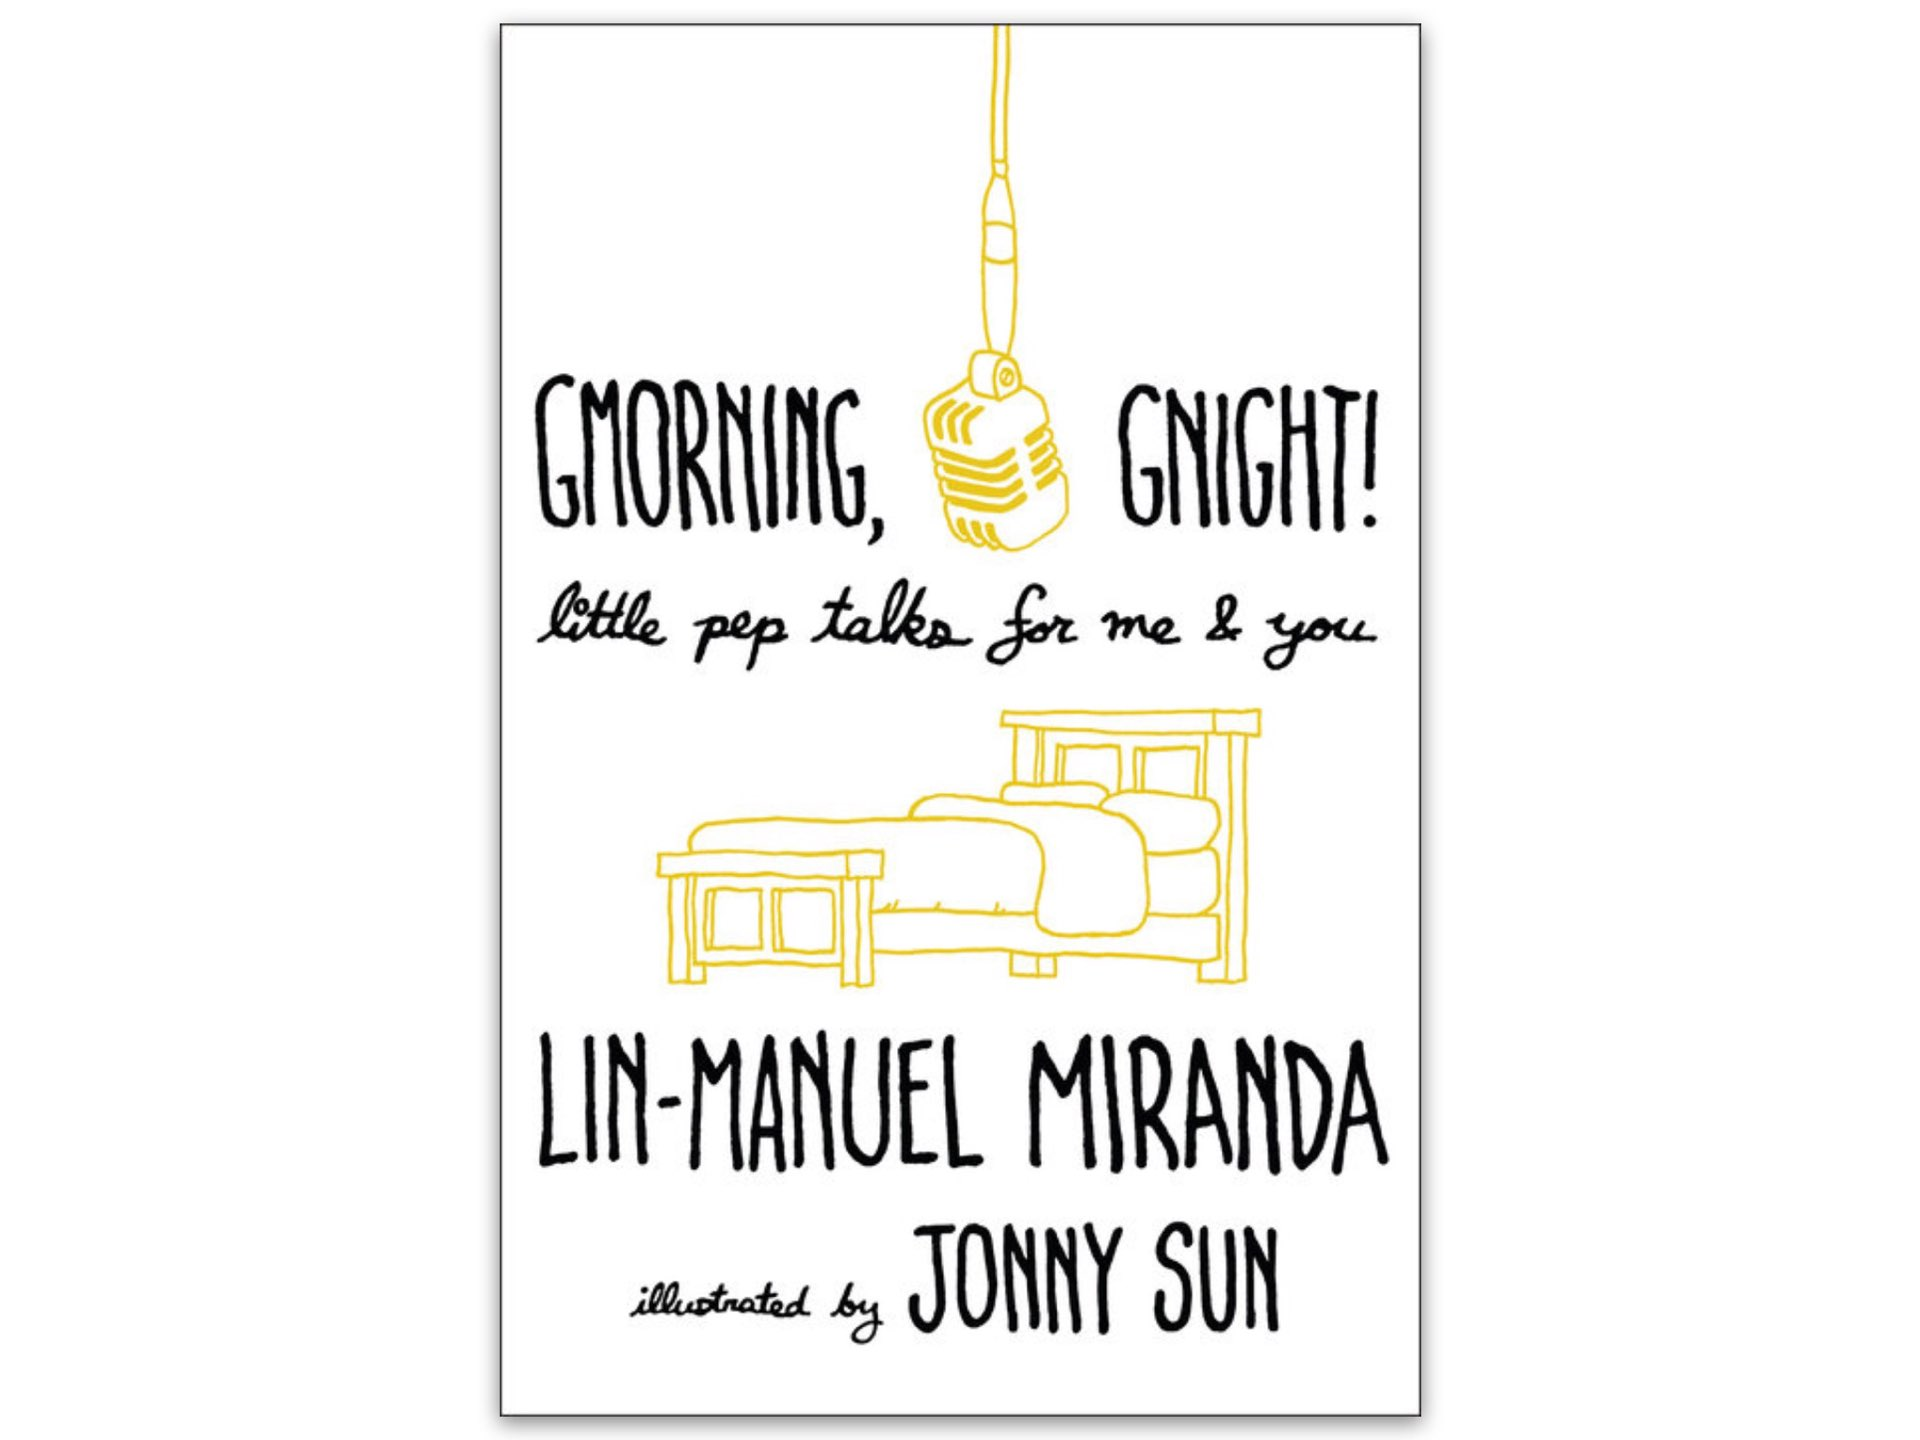 Gmorning, Gnight! by Lin Manuel Miranda and Jonny Sun. ($14 hardcover)